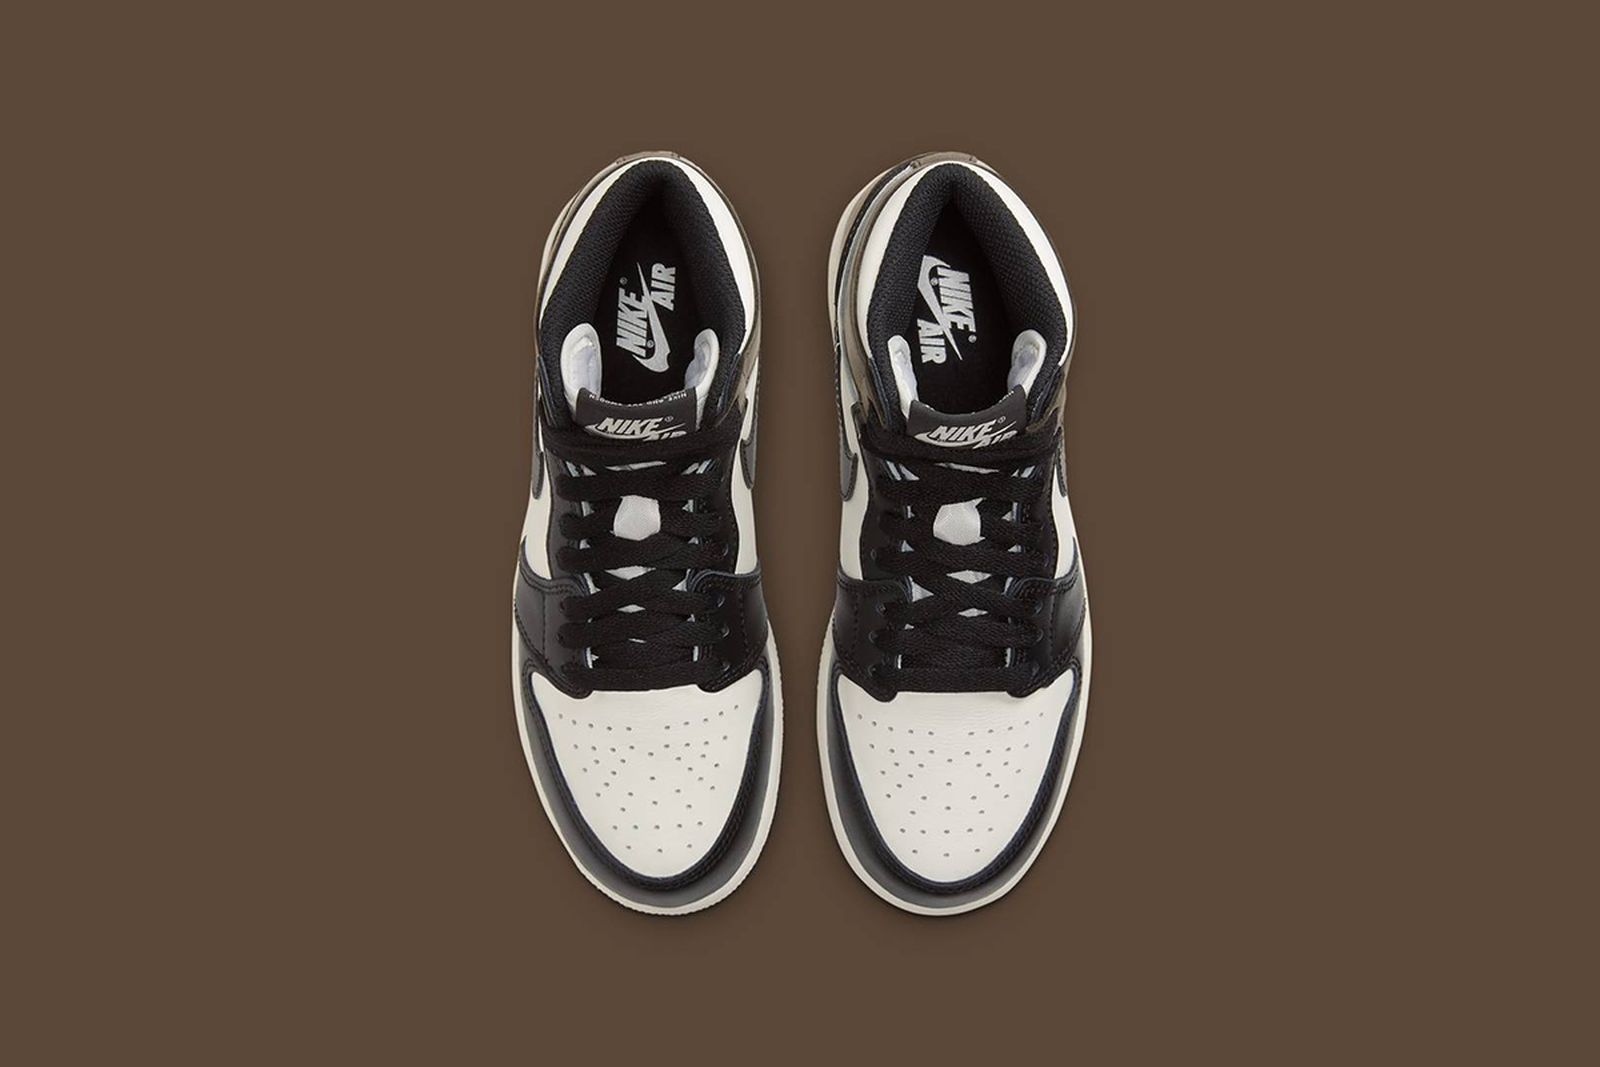 Nike Air Jordan 1 Dark Mocha: Official Release Date (Europe)